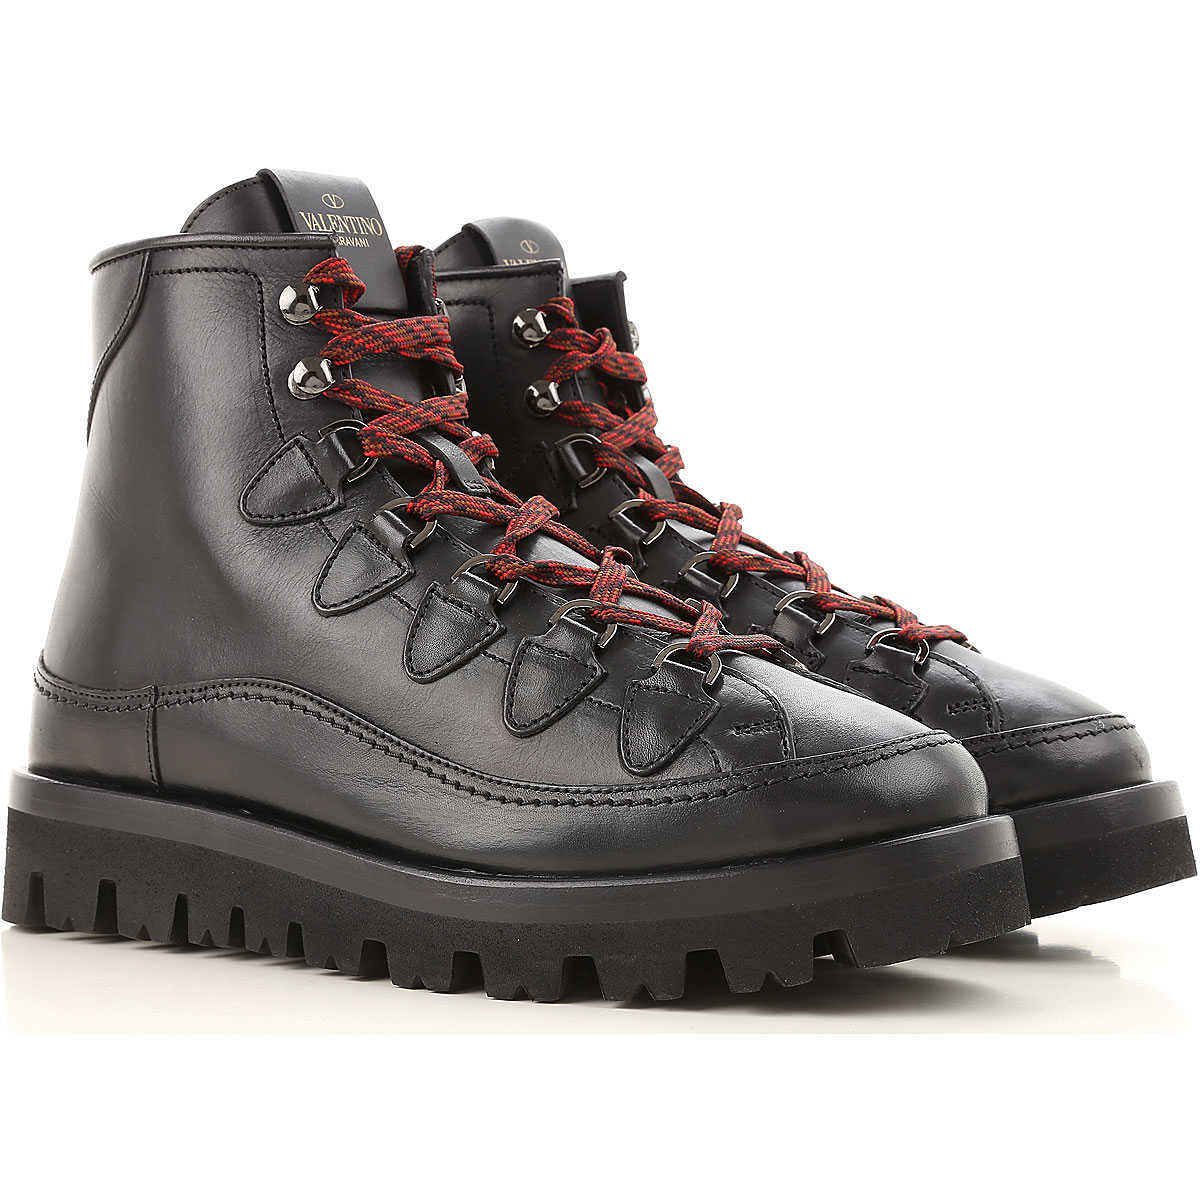 Valentino Garavani Boots for Men 6 6.5 6.75 Booties On Sale in Outlet UK - GOOFASH